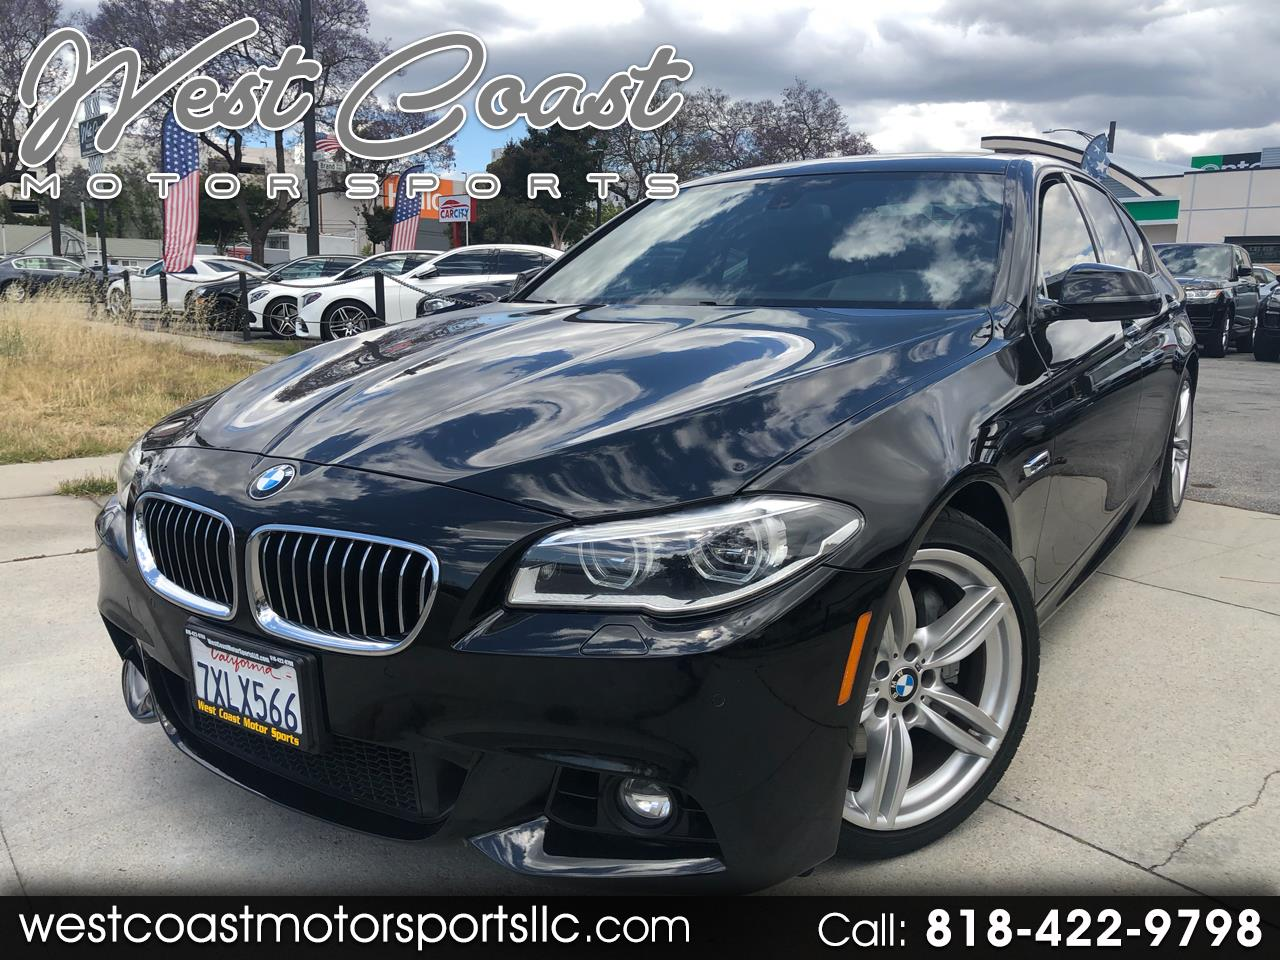 2014 BMW 5-Series 535 Msport pakg